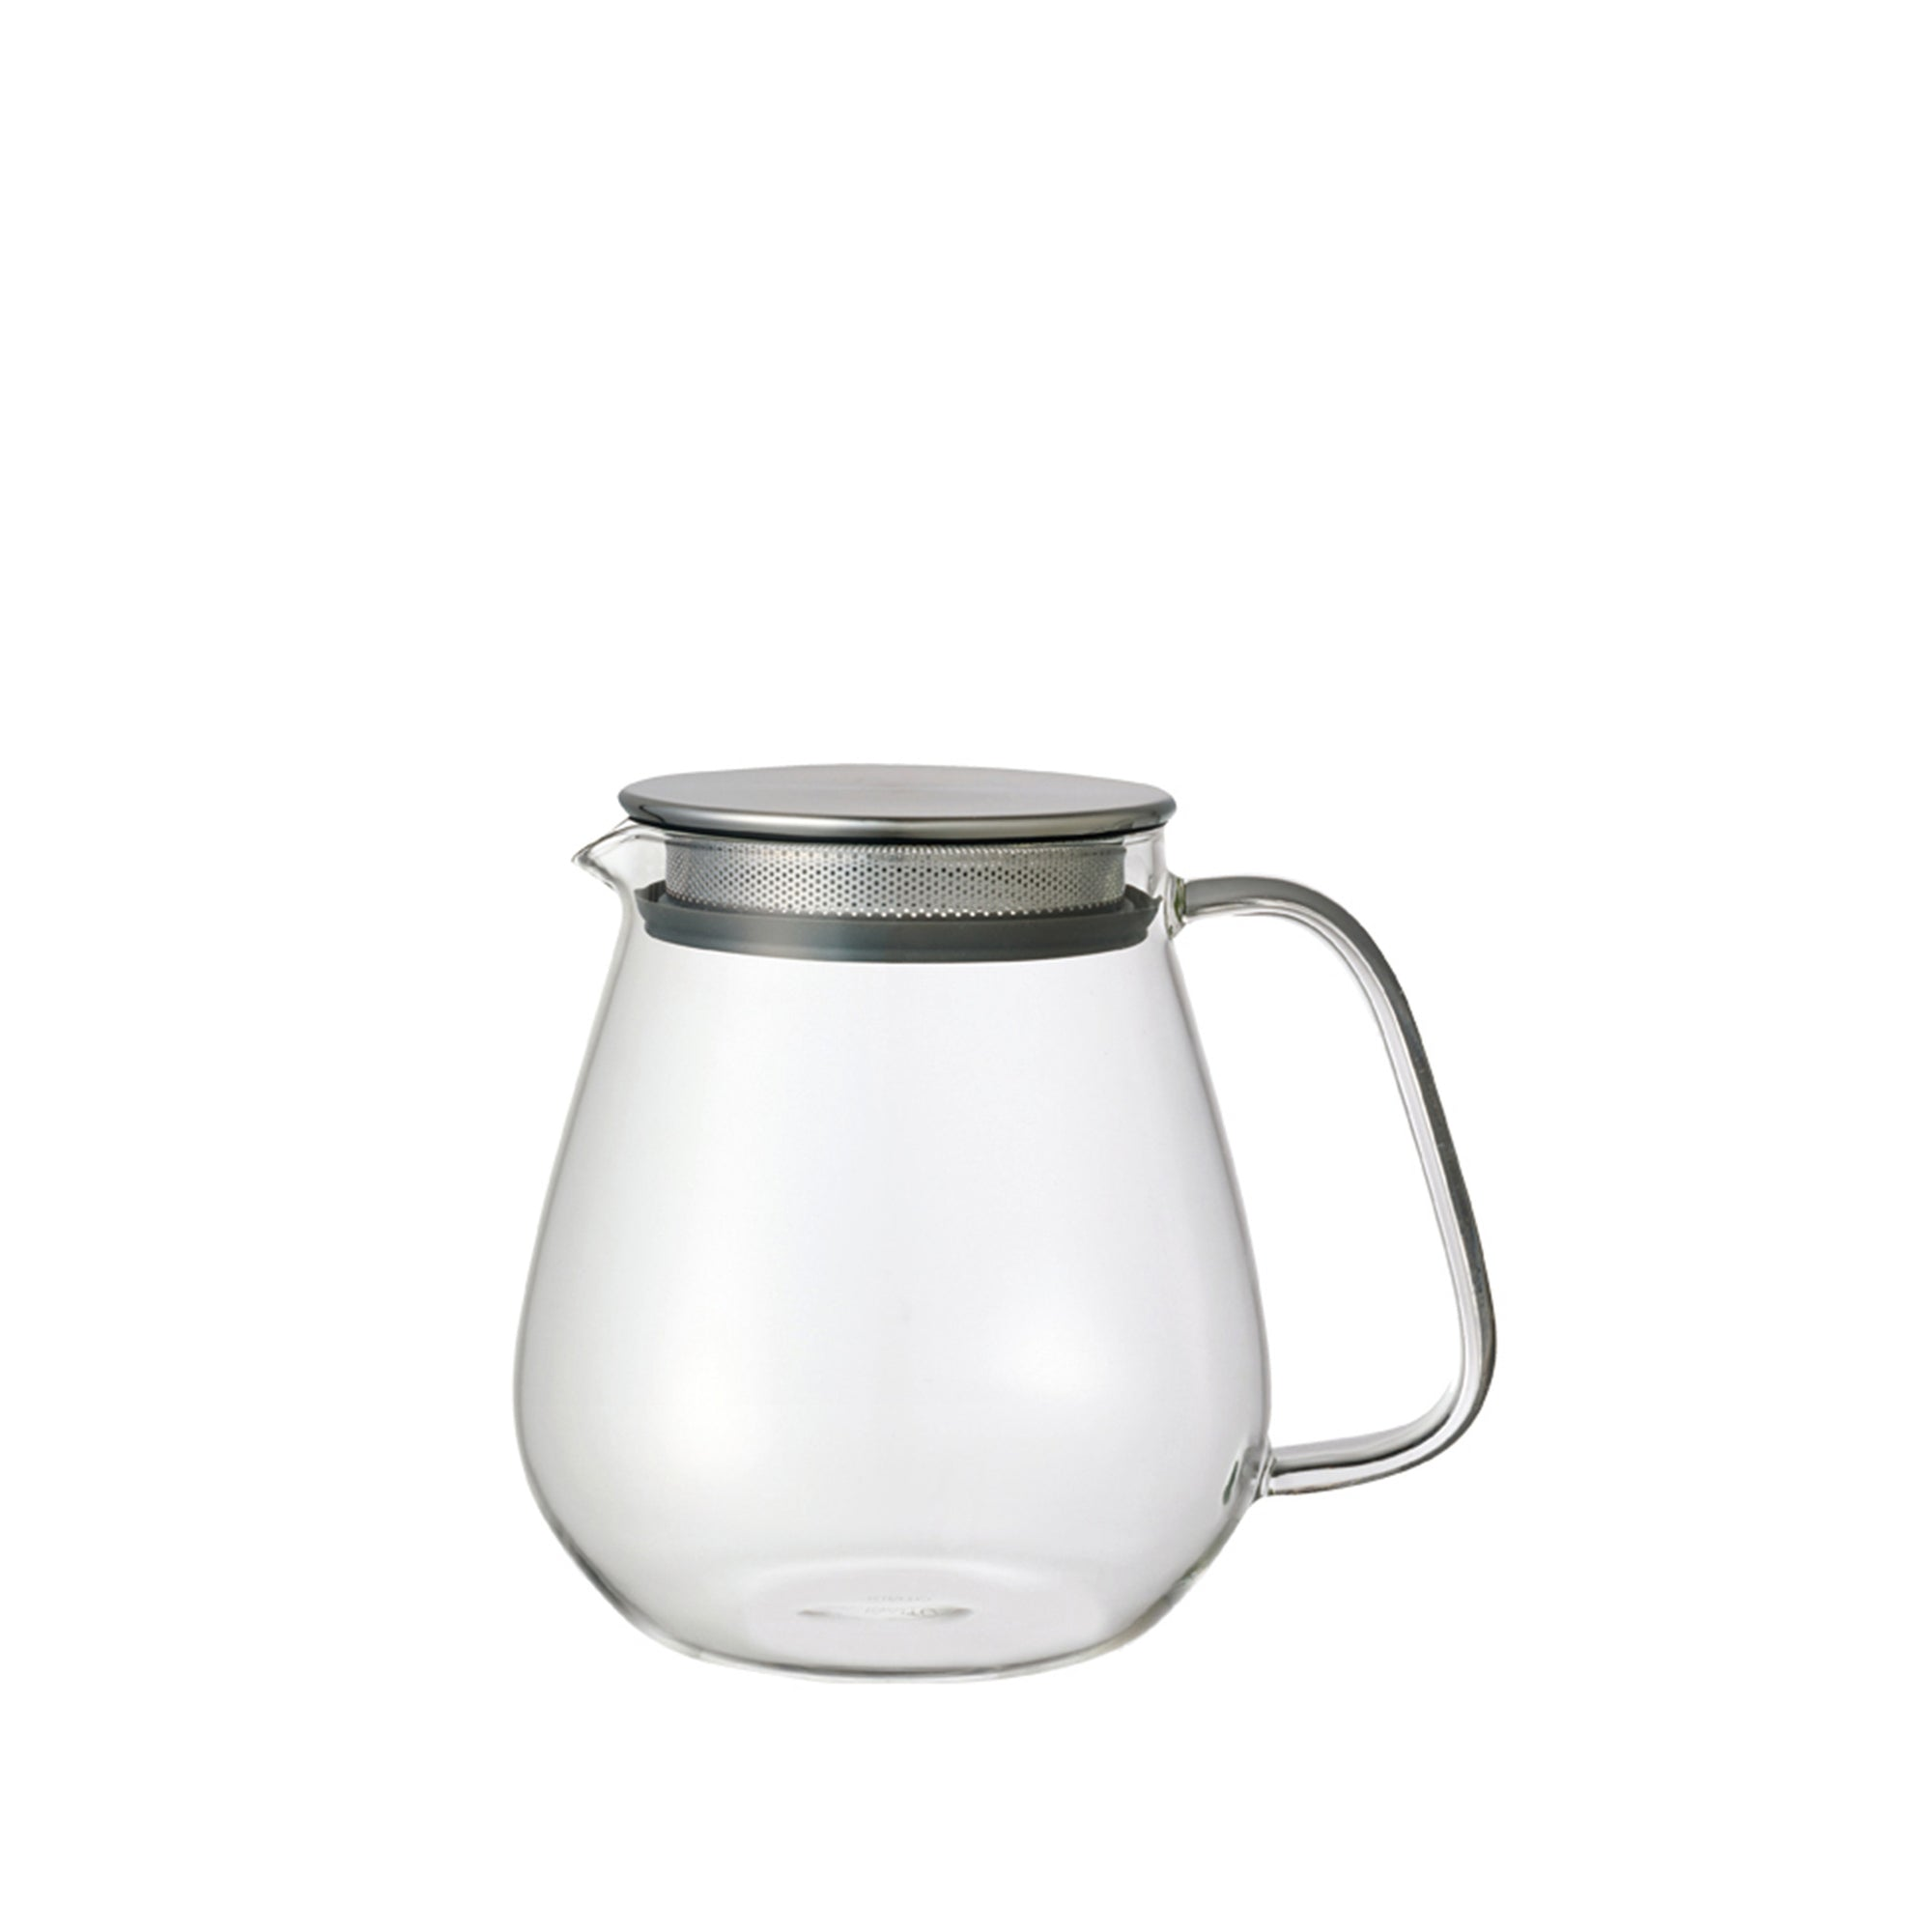 Tea Server  Unitea One Touch 720ml - Kinto - Espresso Gear